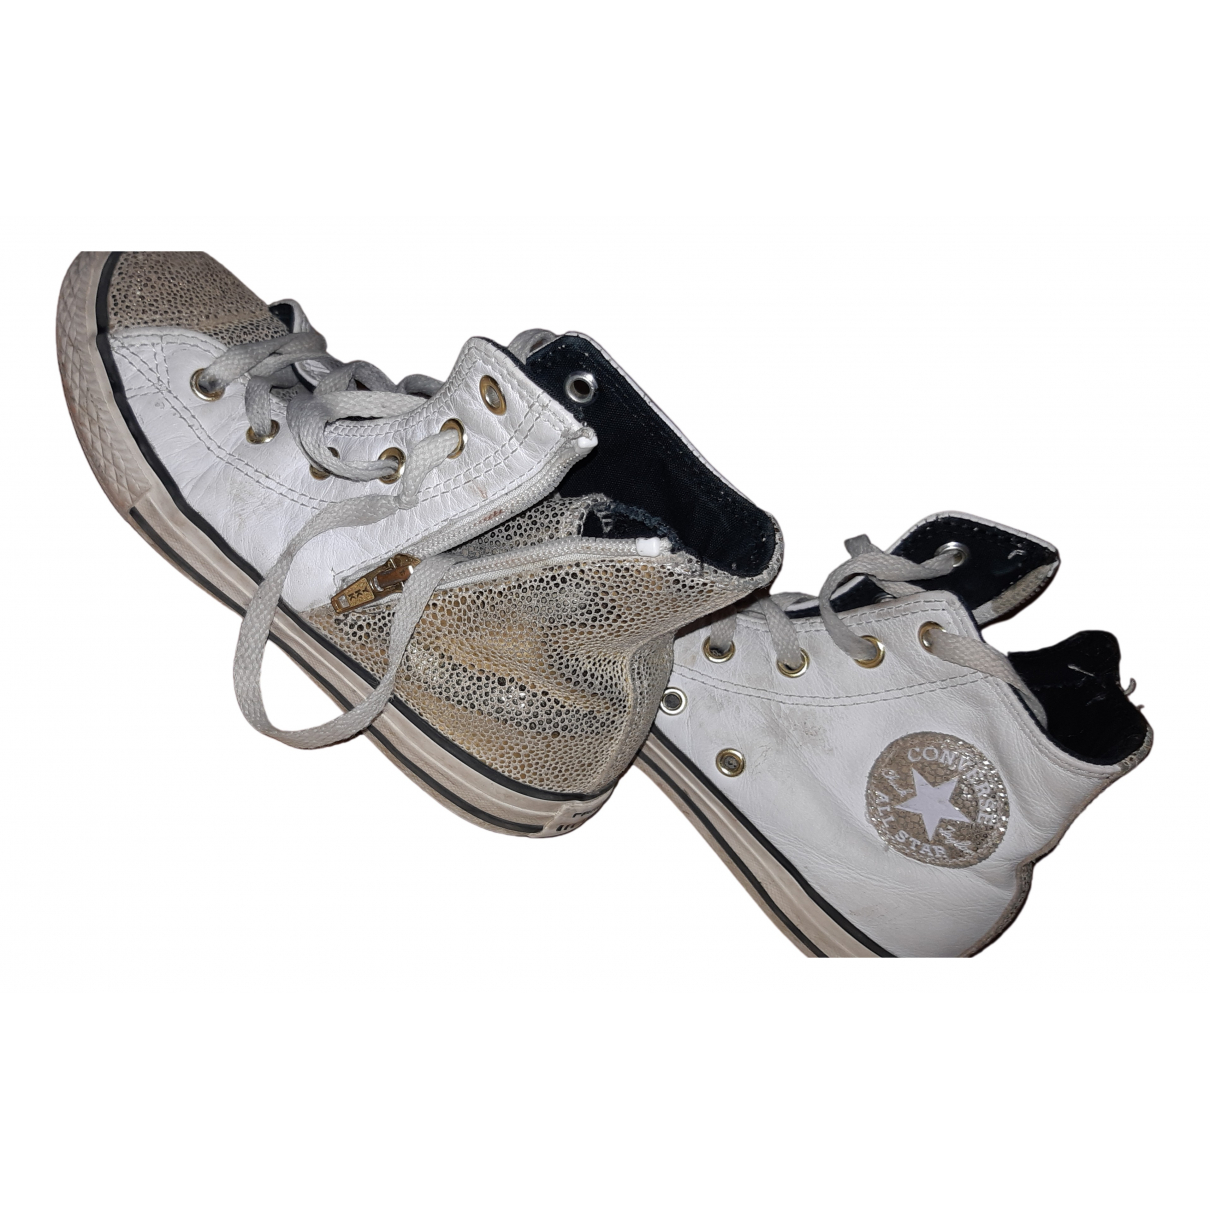 Converse N White Leather Lace up boots for Kids 32 FR